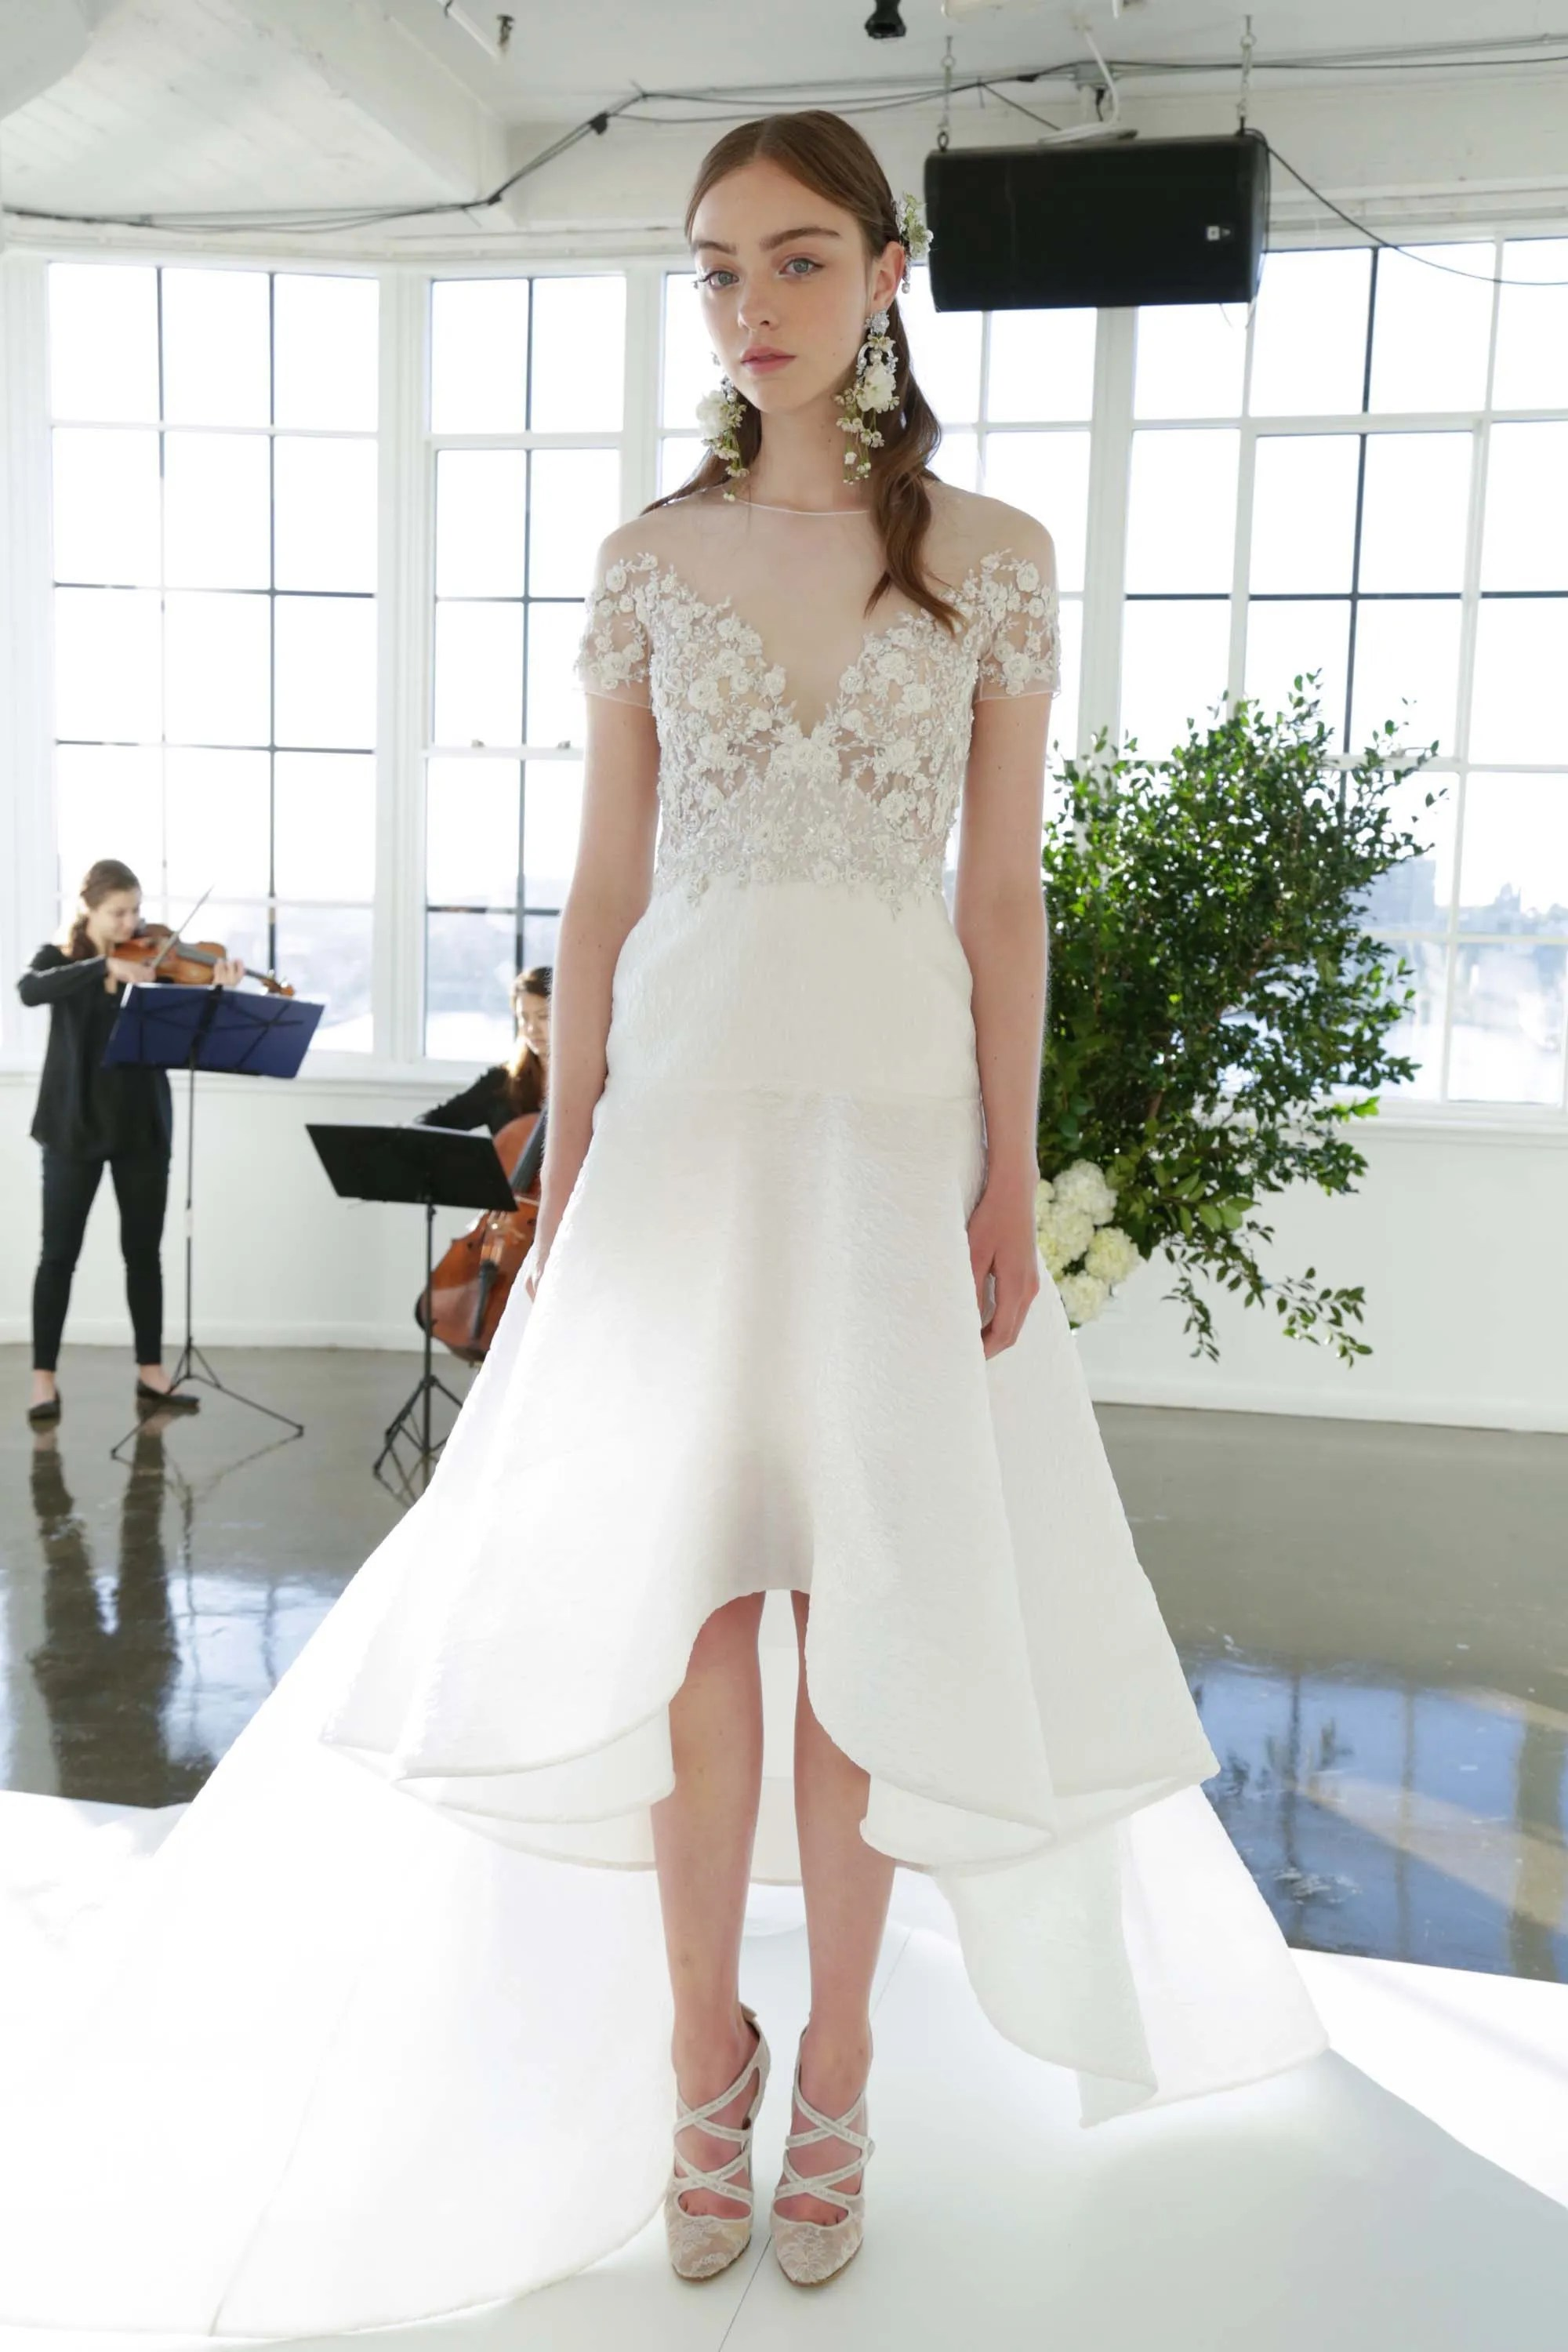 Adorable Fall Biggest Bridal Trends Vogue Wedding Dress Styles Different Body Types Wedding Dress Styles 2019 wedding dress Wedding Dress Styles